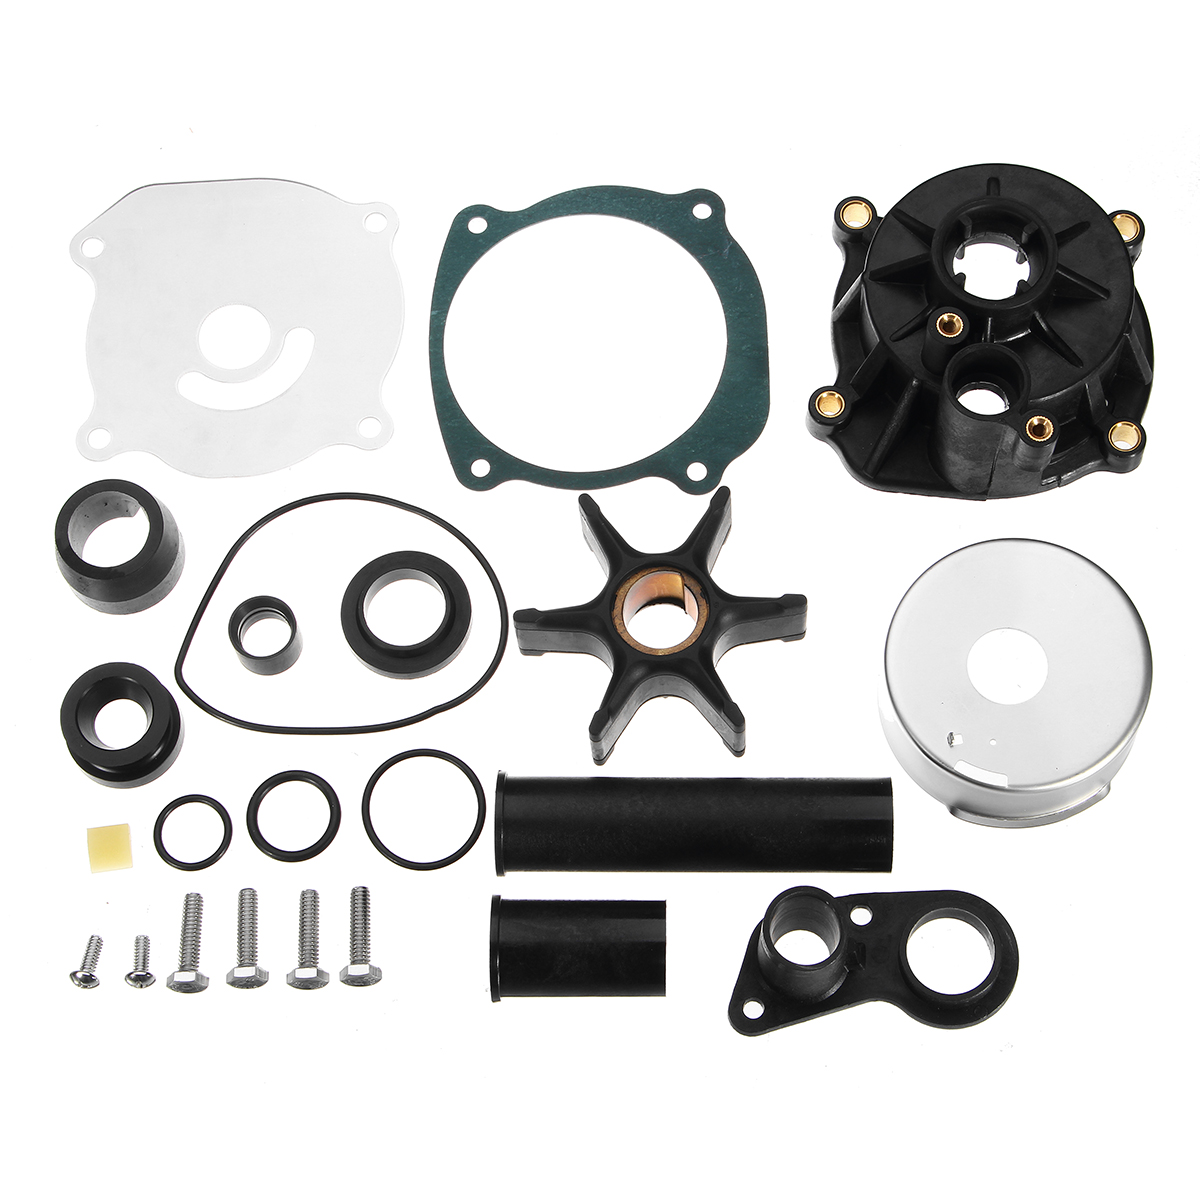 Water Pump Impeller Repair Kit Set Housing For Johnson Evinrude 75-250HP 5001595